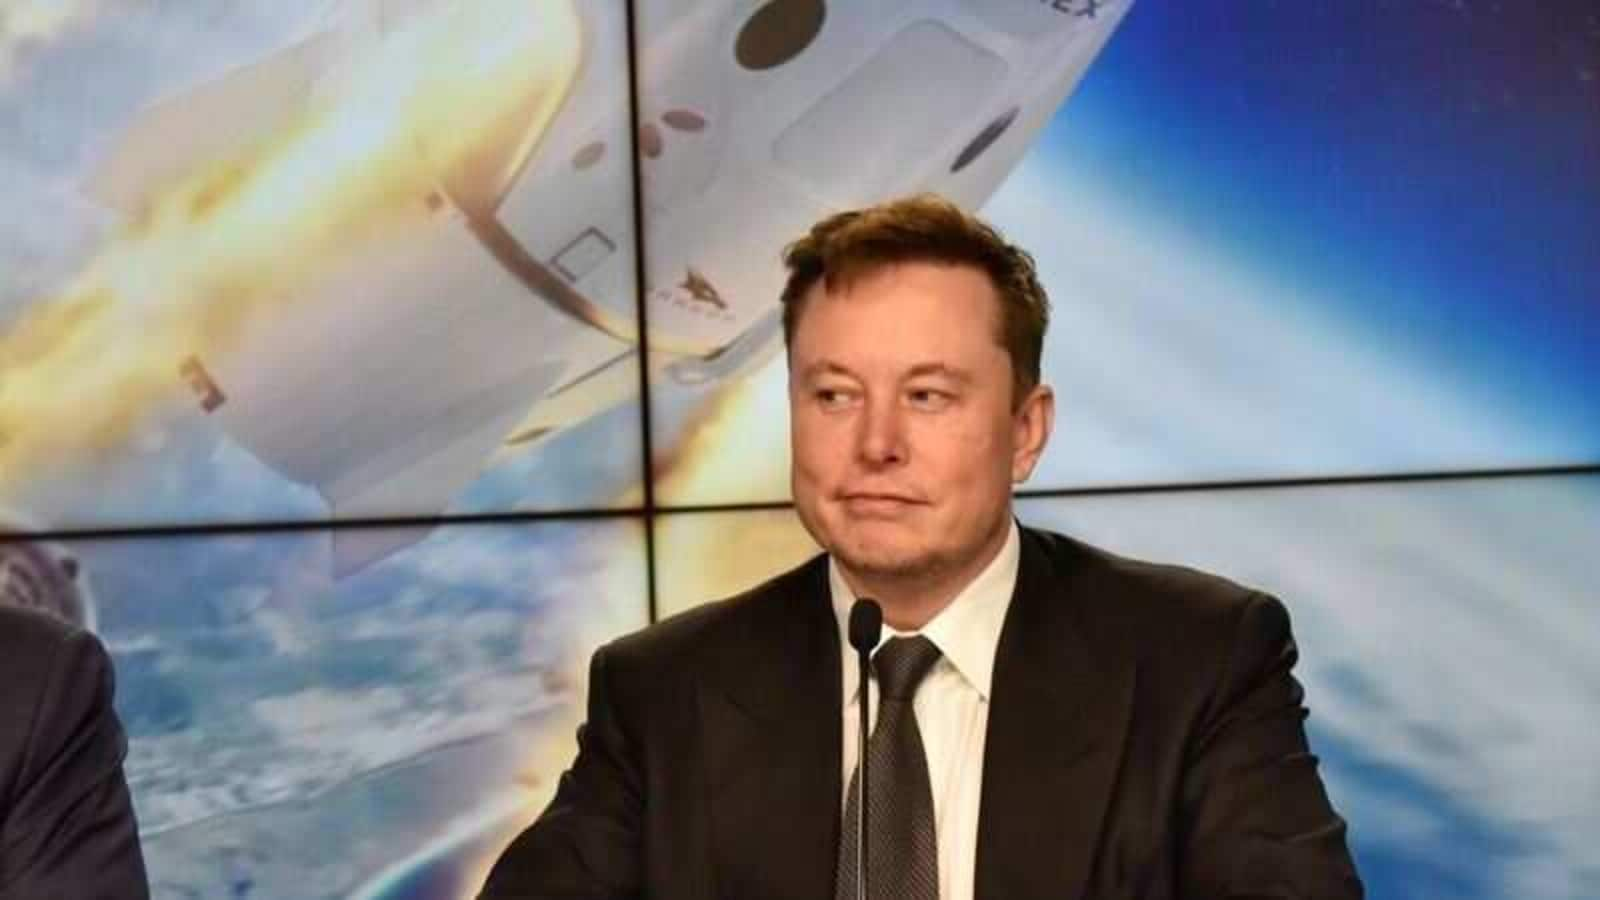 Elon Musk's reply to a Mars-related tweet has left people in splits